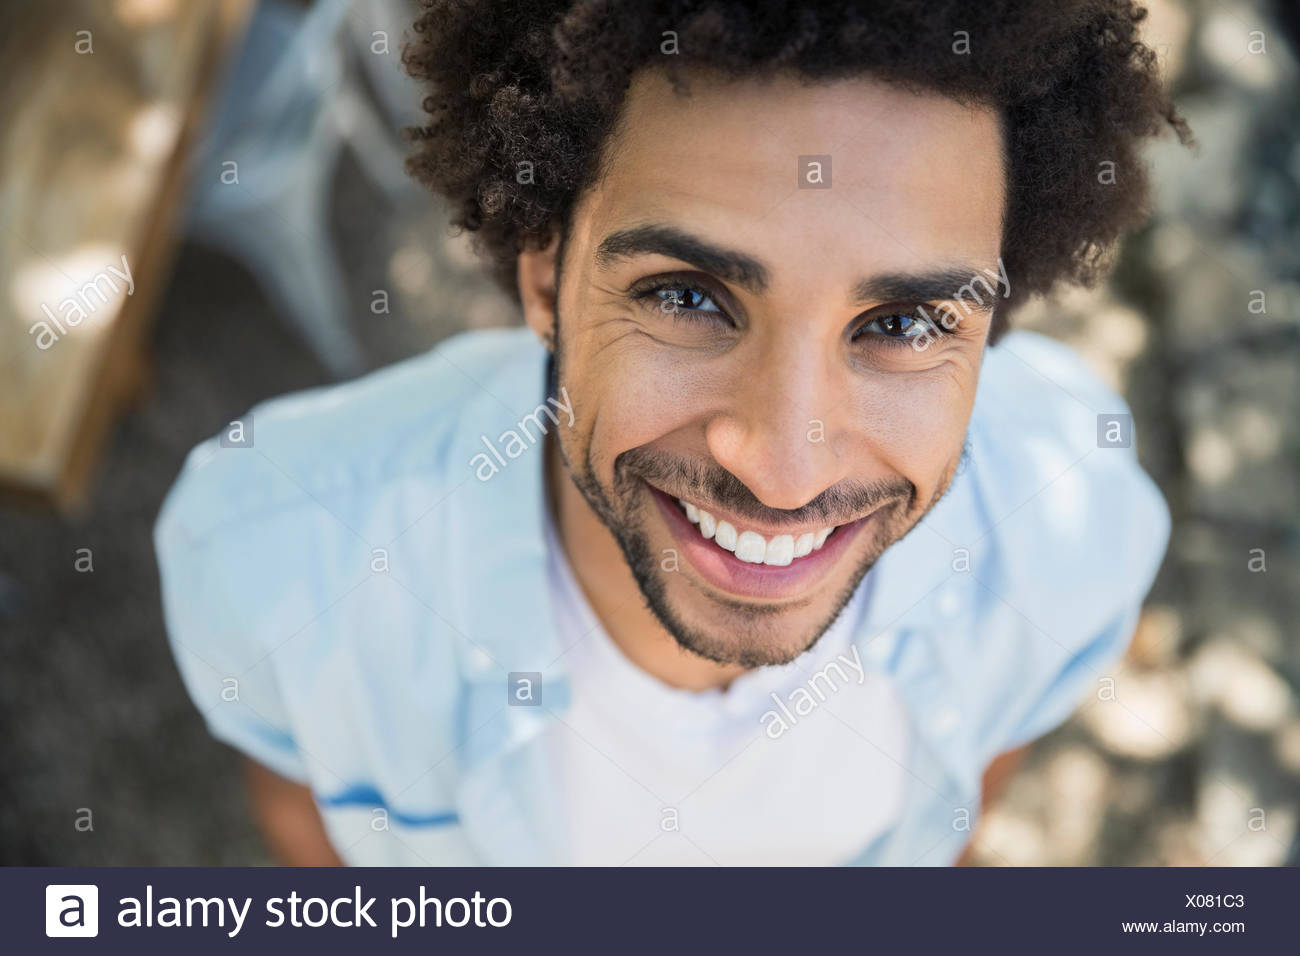 High angle portrait smiling man curly hair - Stock Image